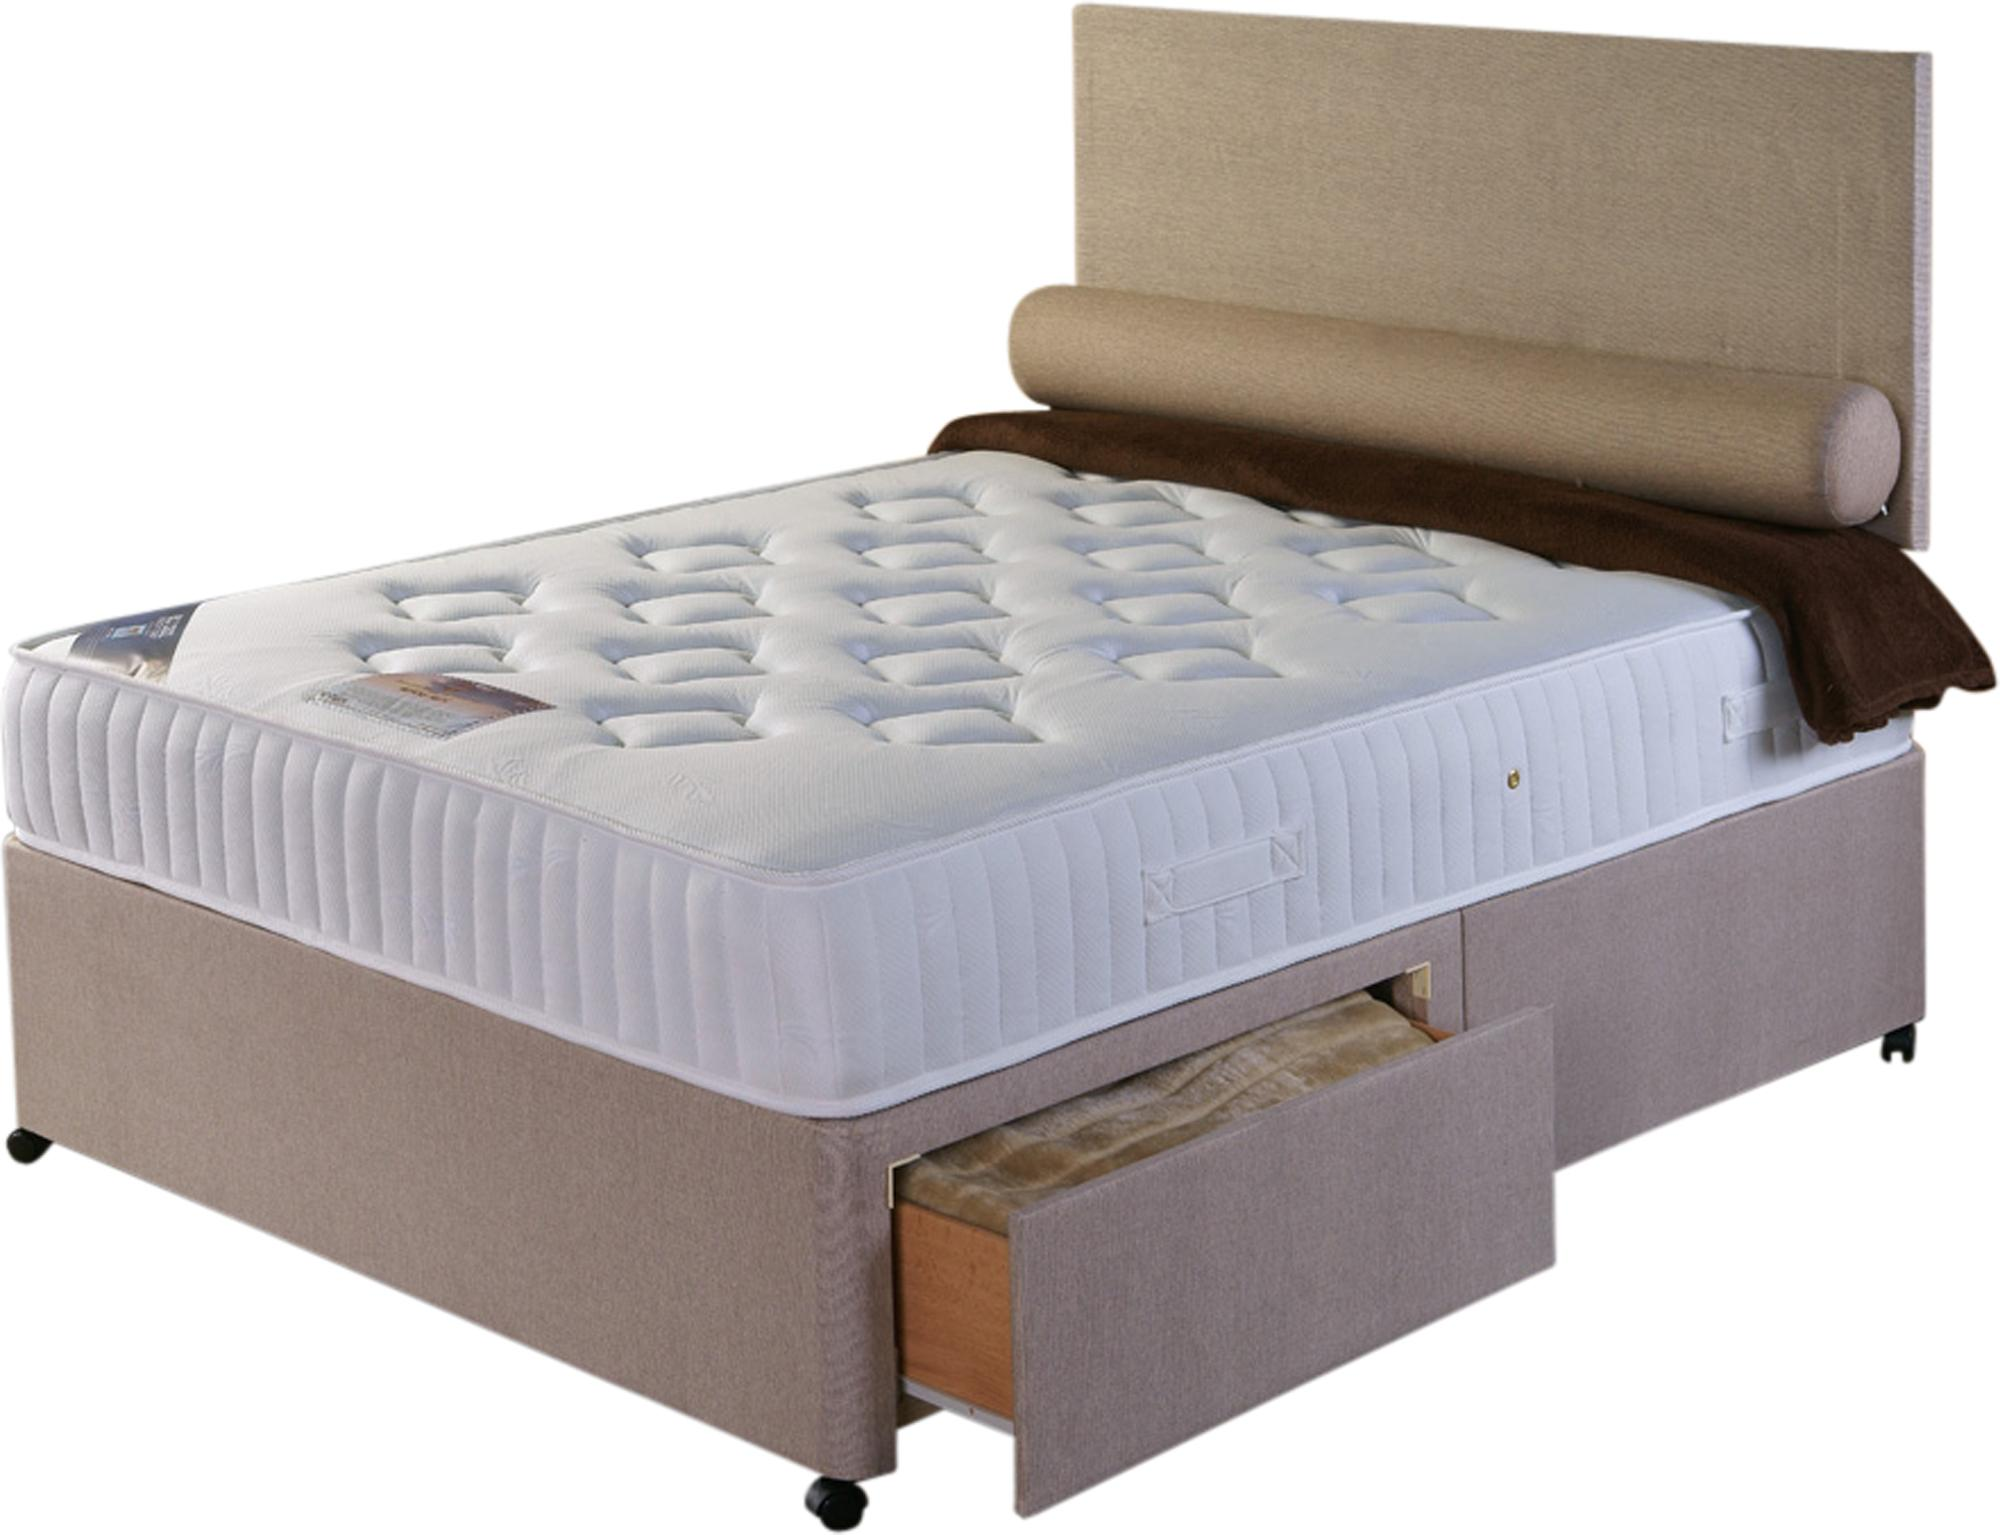 Memorypaedic Bed Set White  Cheap Divan Beds from Terrys